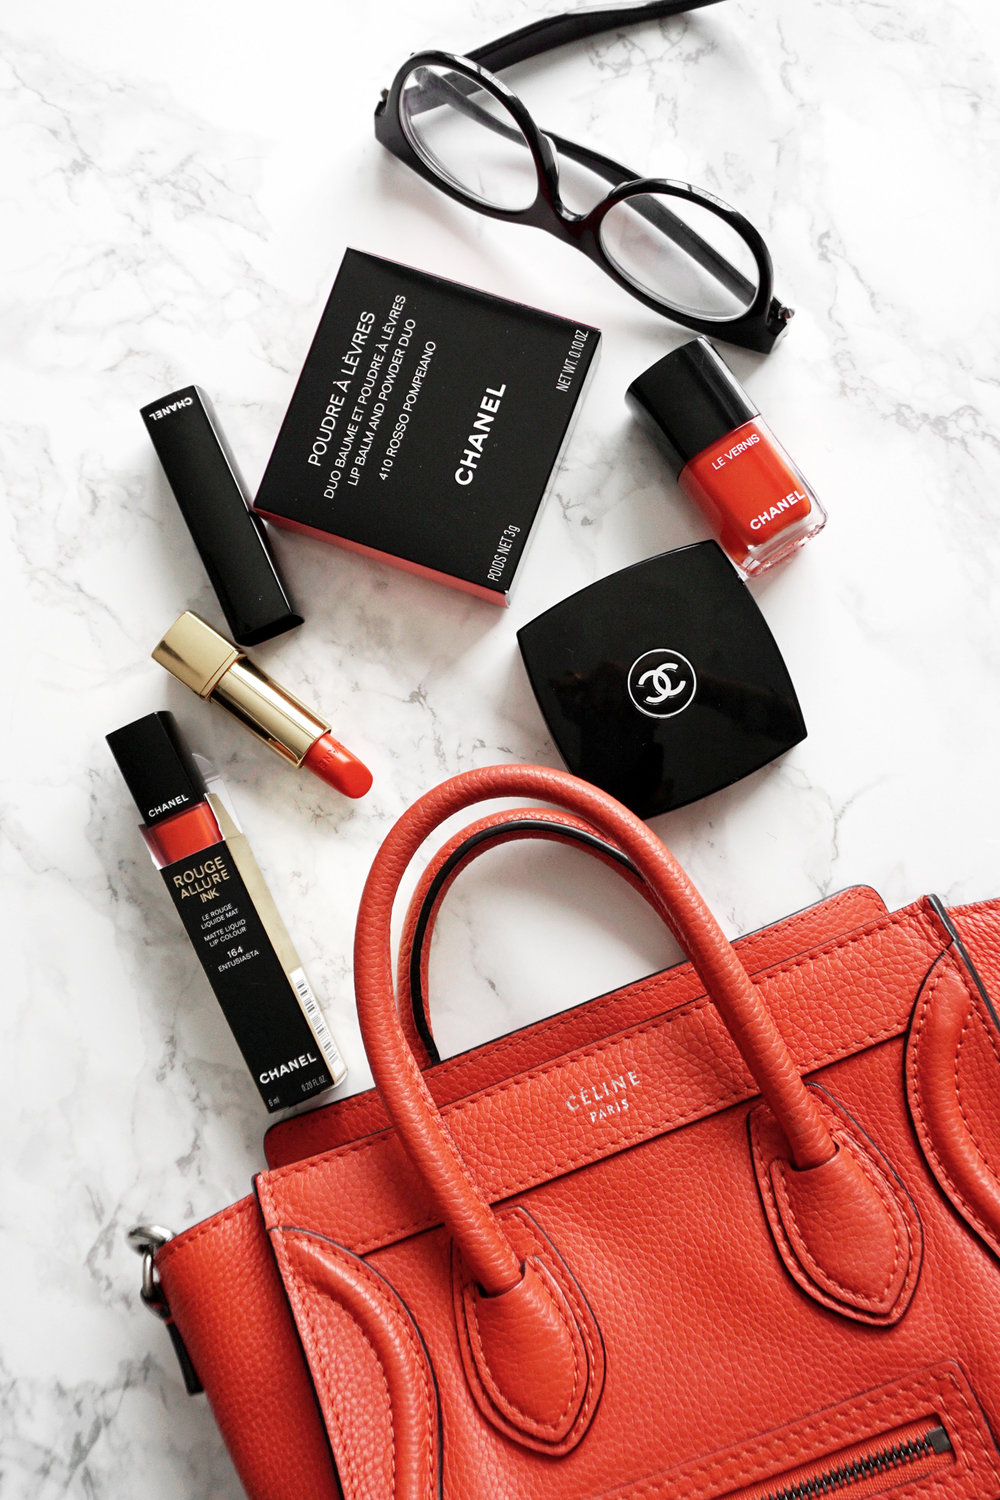 Matching my Céline Nano Luggage bag to my lipstick. If you haven't already, make sure you check out my lipstick blog- lipsick.me. It's a true labour of love!